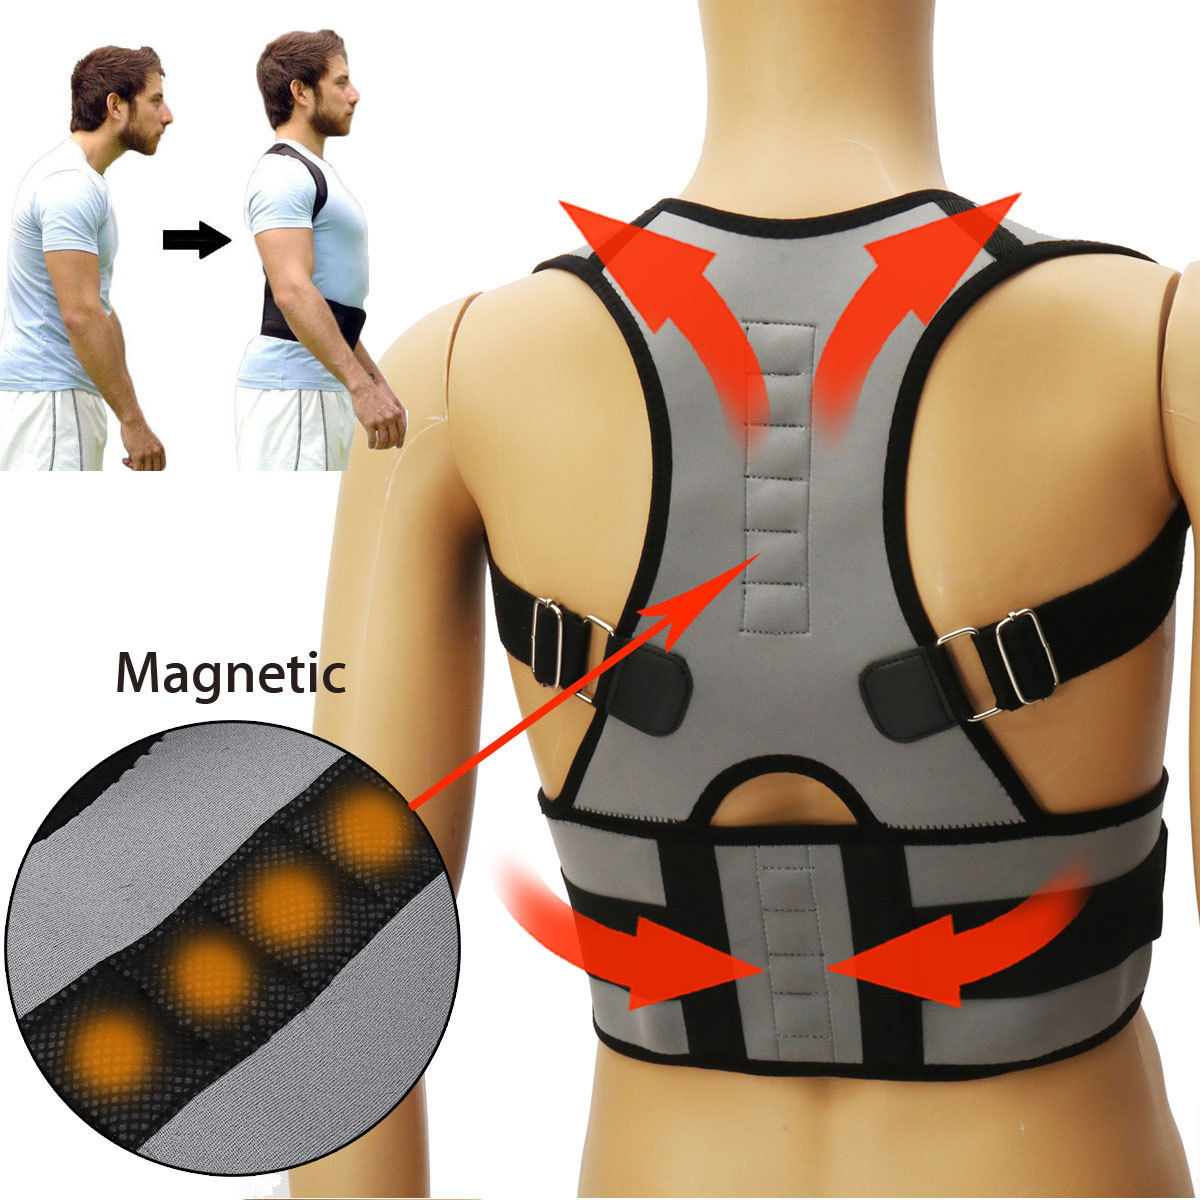 Details about Men / Women Adjustable Posture Corrector Brace Shoulder Back Support Belt